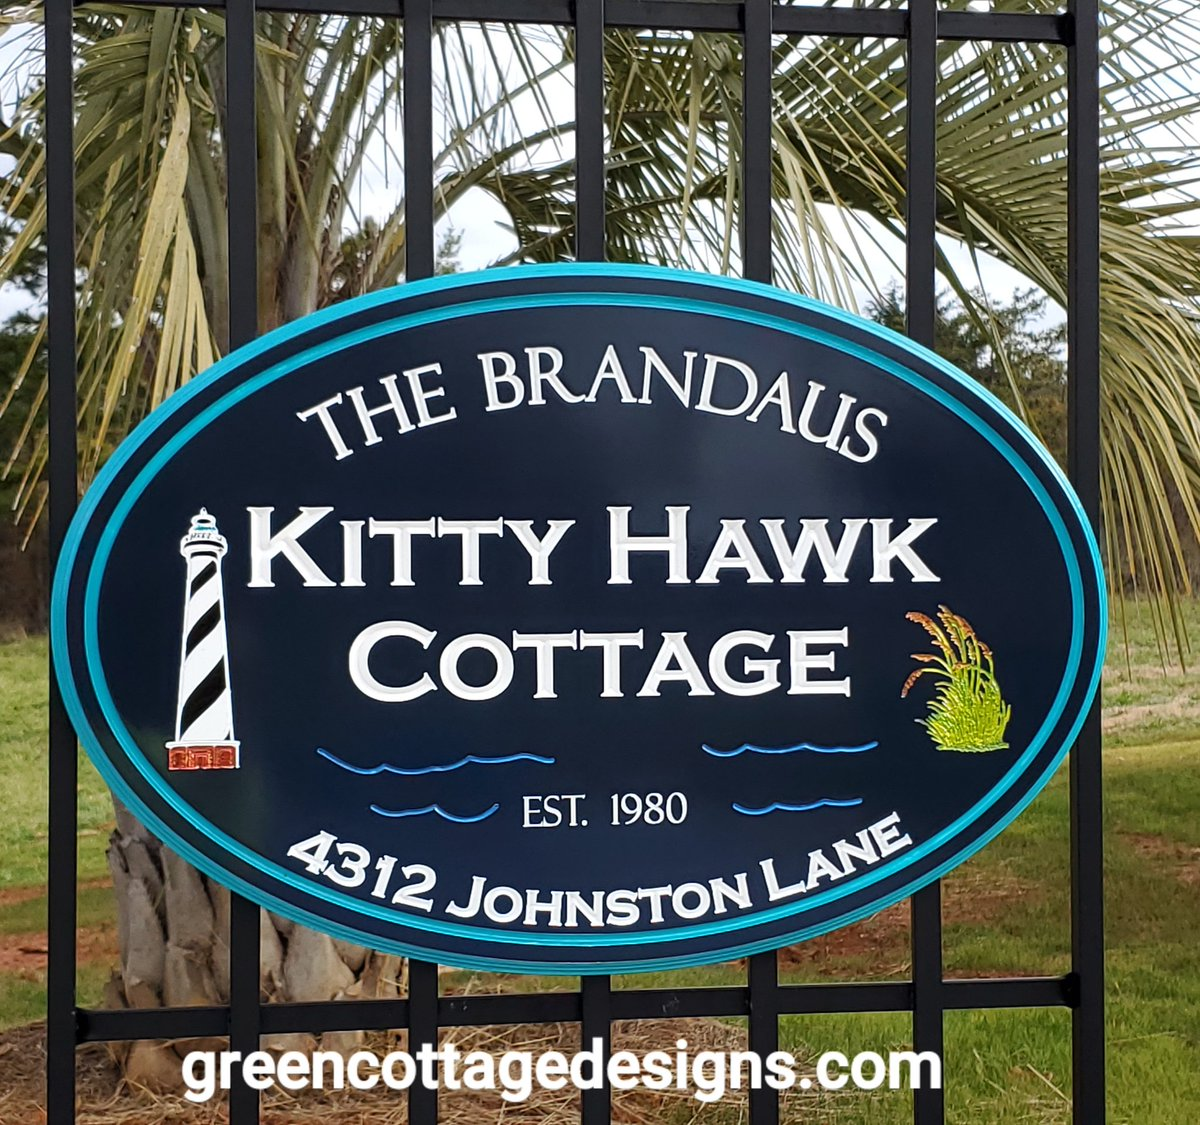 OUTER BANKS COTTAGE SIGNS by http://greencottagedesigns.com  #obx #KittyHawk #NagsHead #Topsail #holdenbeach #DuckNC #RaleighNC #customsignspic.twitter.com/IWGtYDQ479